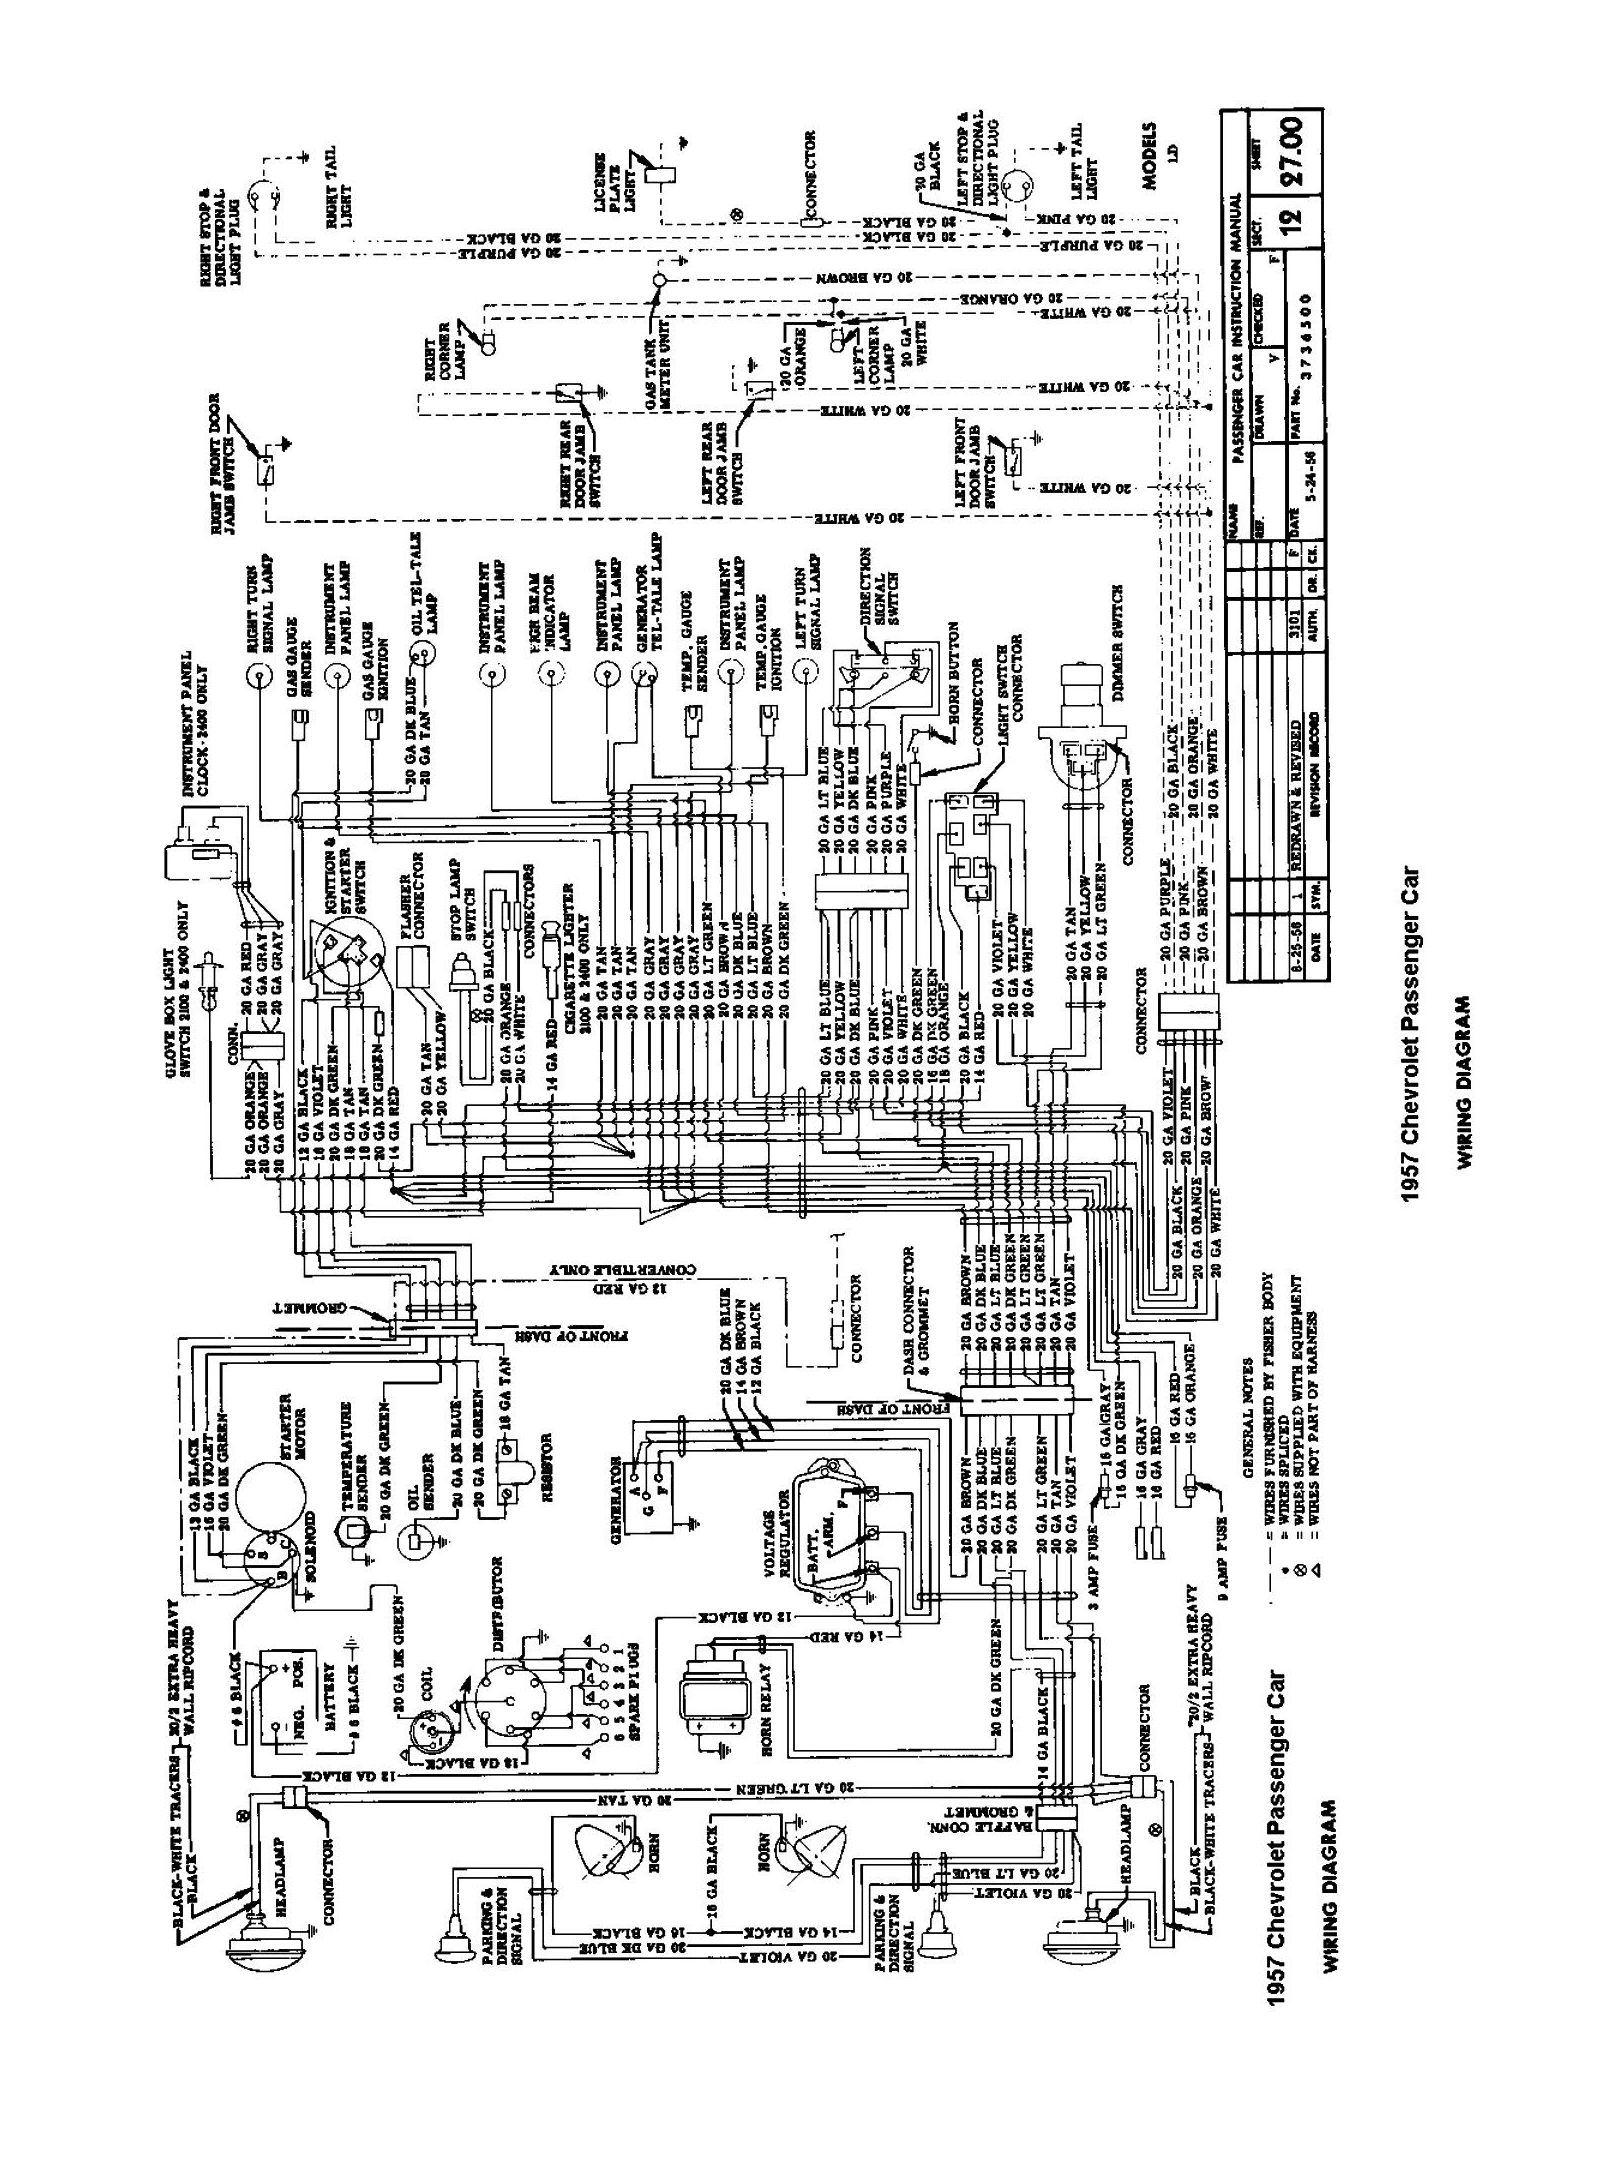 57 Chevy wiring diagram | Growth and evolution | 1957